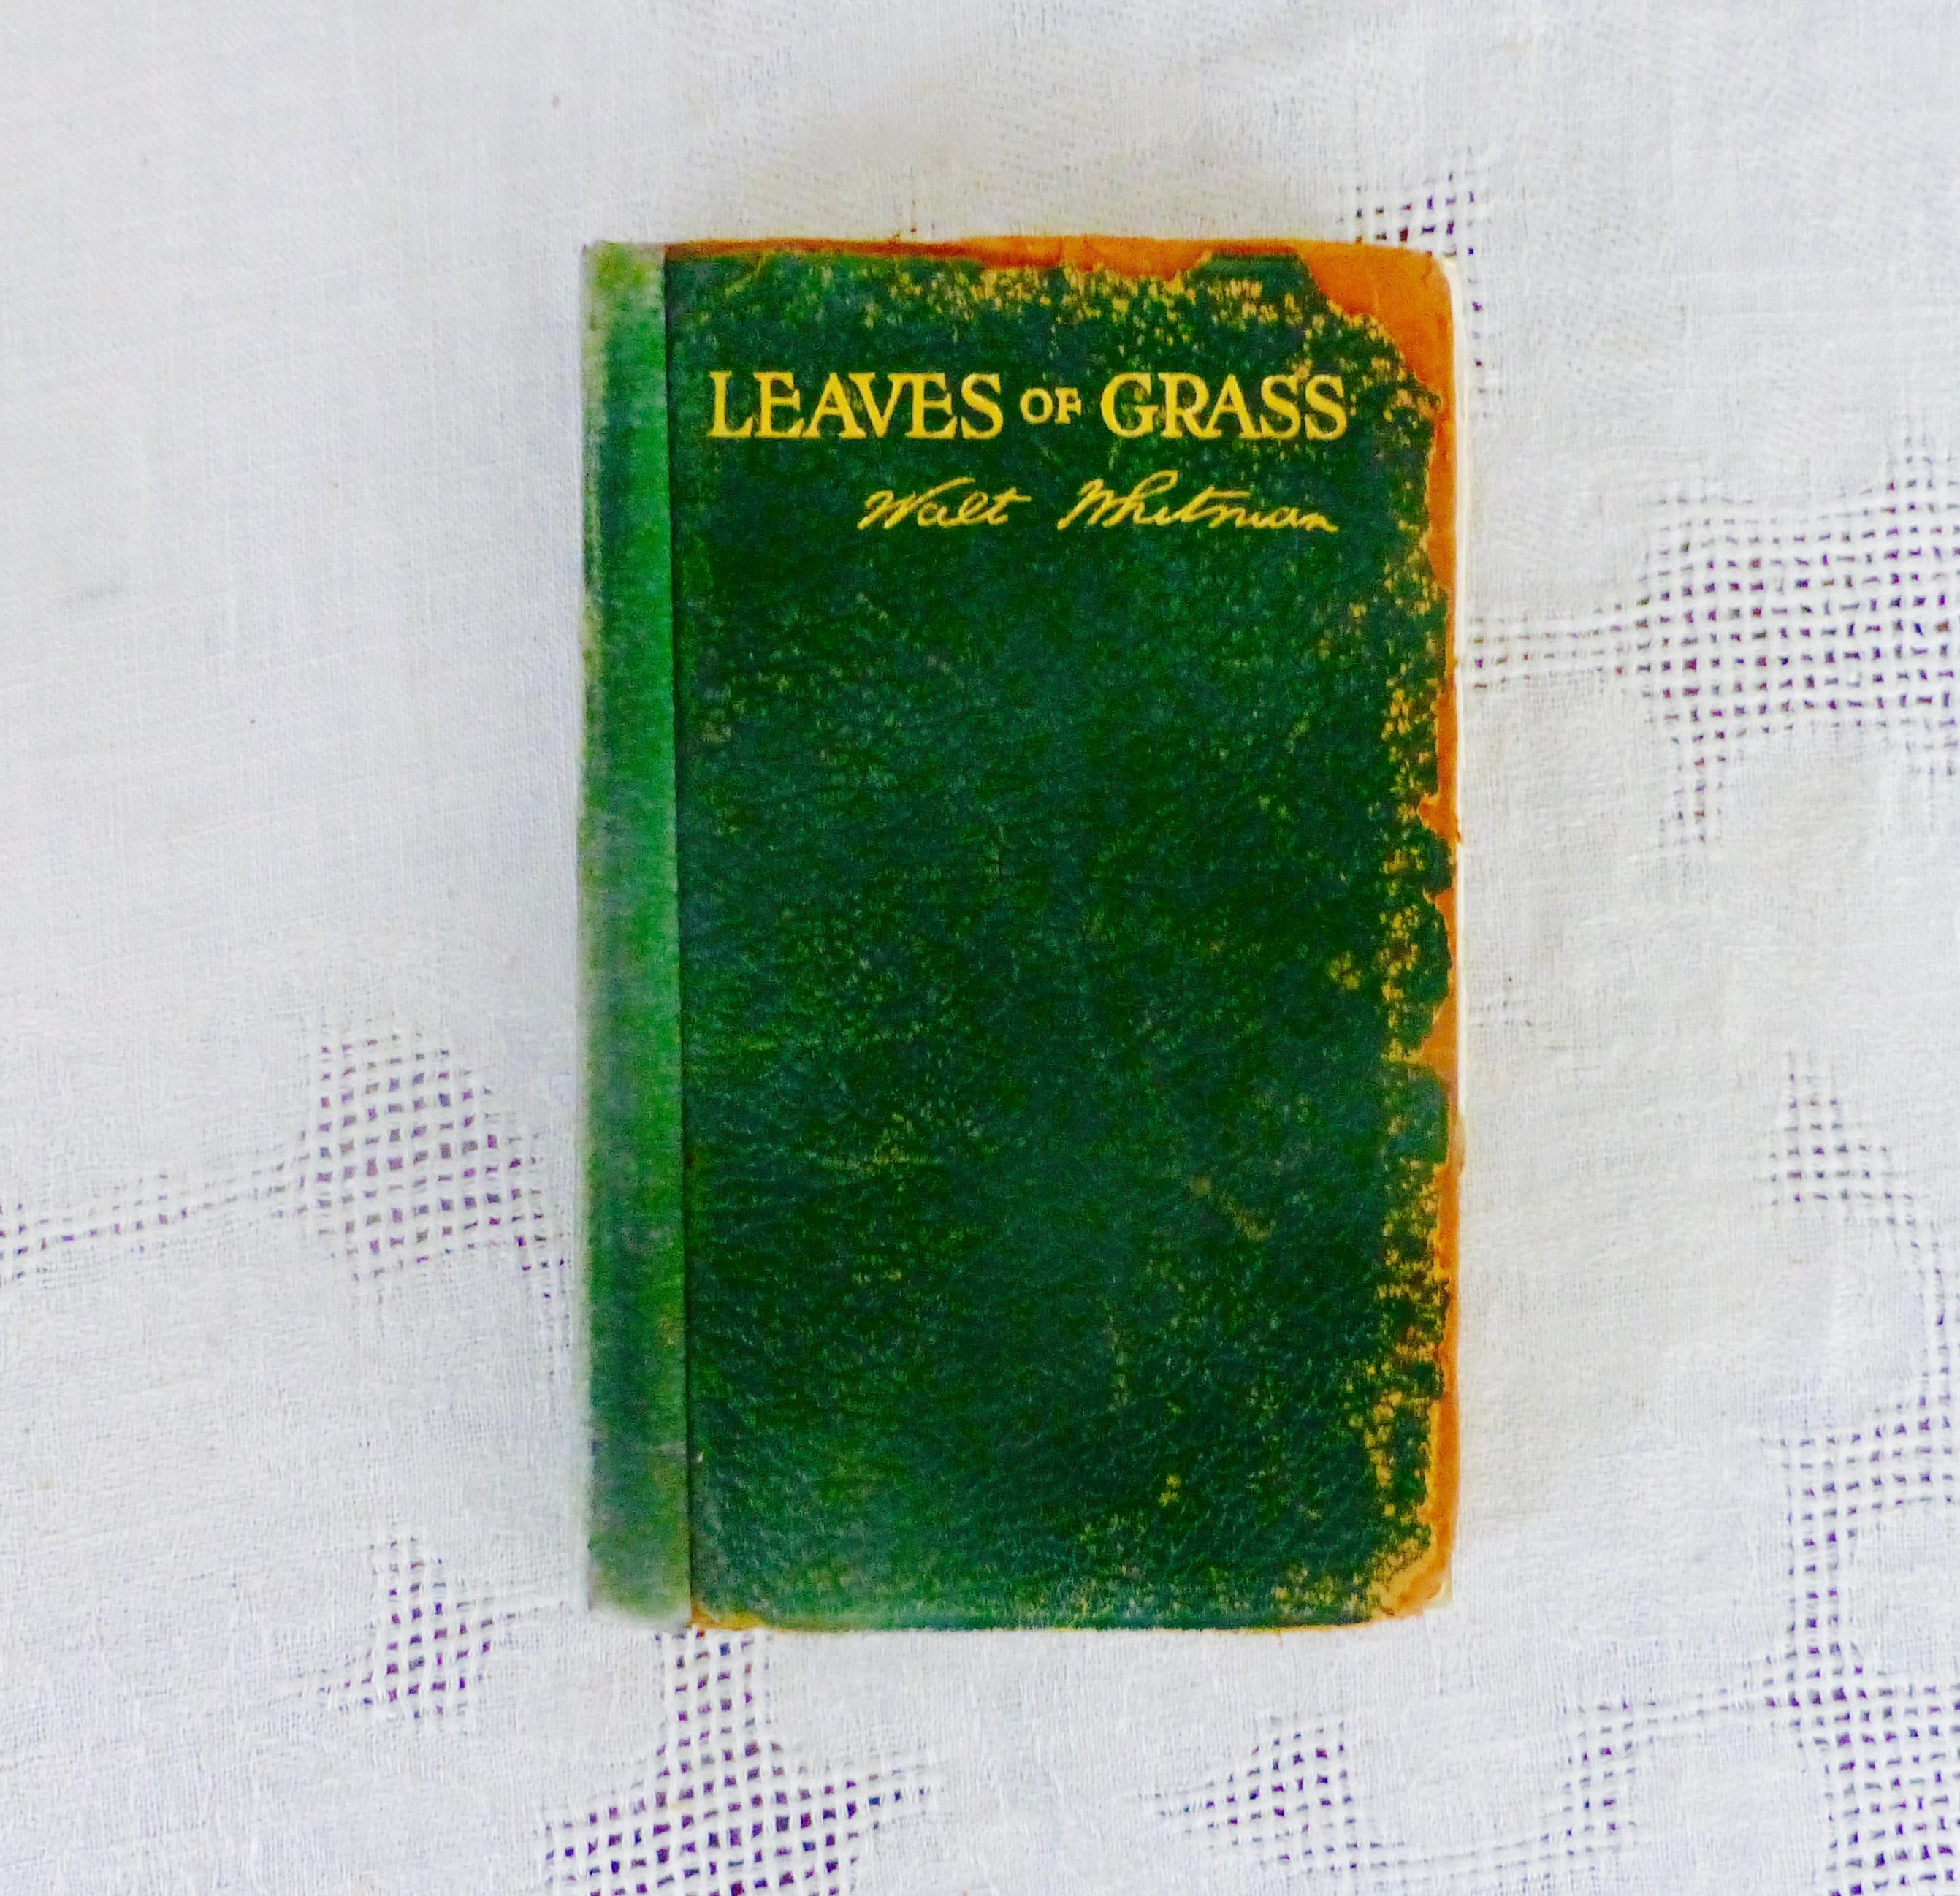 an analysis of leaves of grass by walt whitman Critical analysis,  leaves of grass walt whitman full  death divine dondra head dream earth edition of leaves eidólons eyes face fill'd forever give hand.